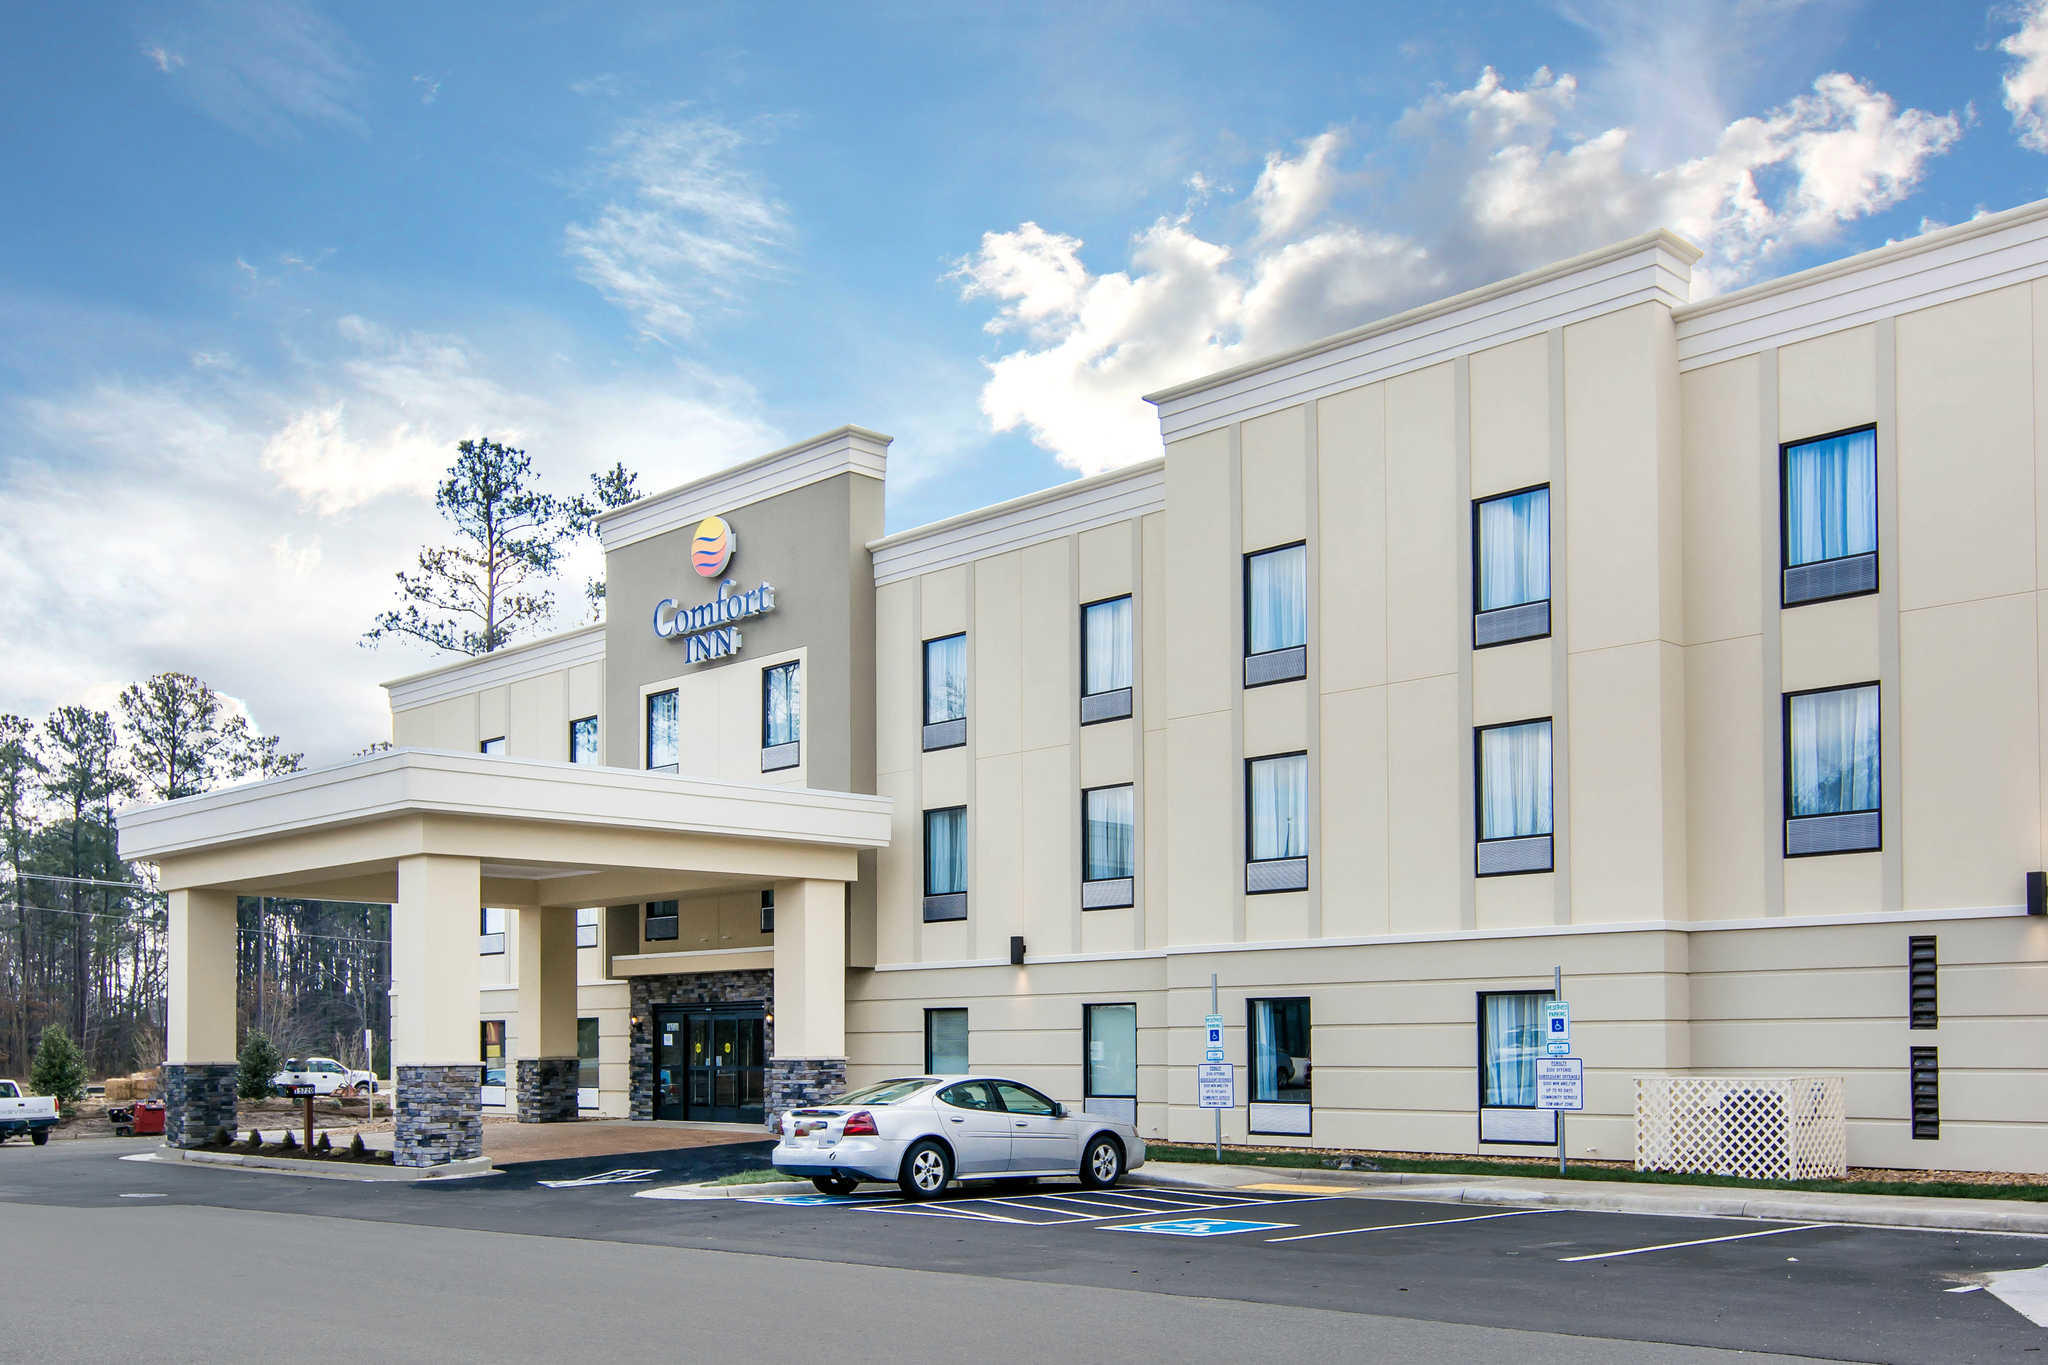 Comfort Inn South Chesterfield - Colonial Heights image 1